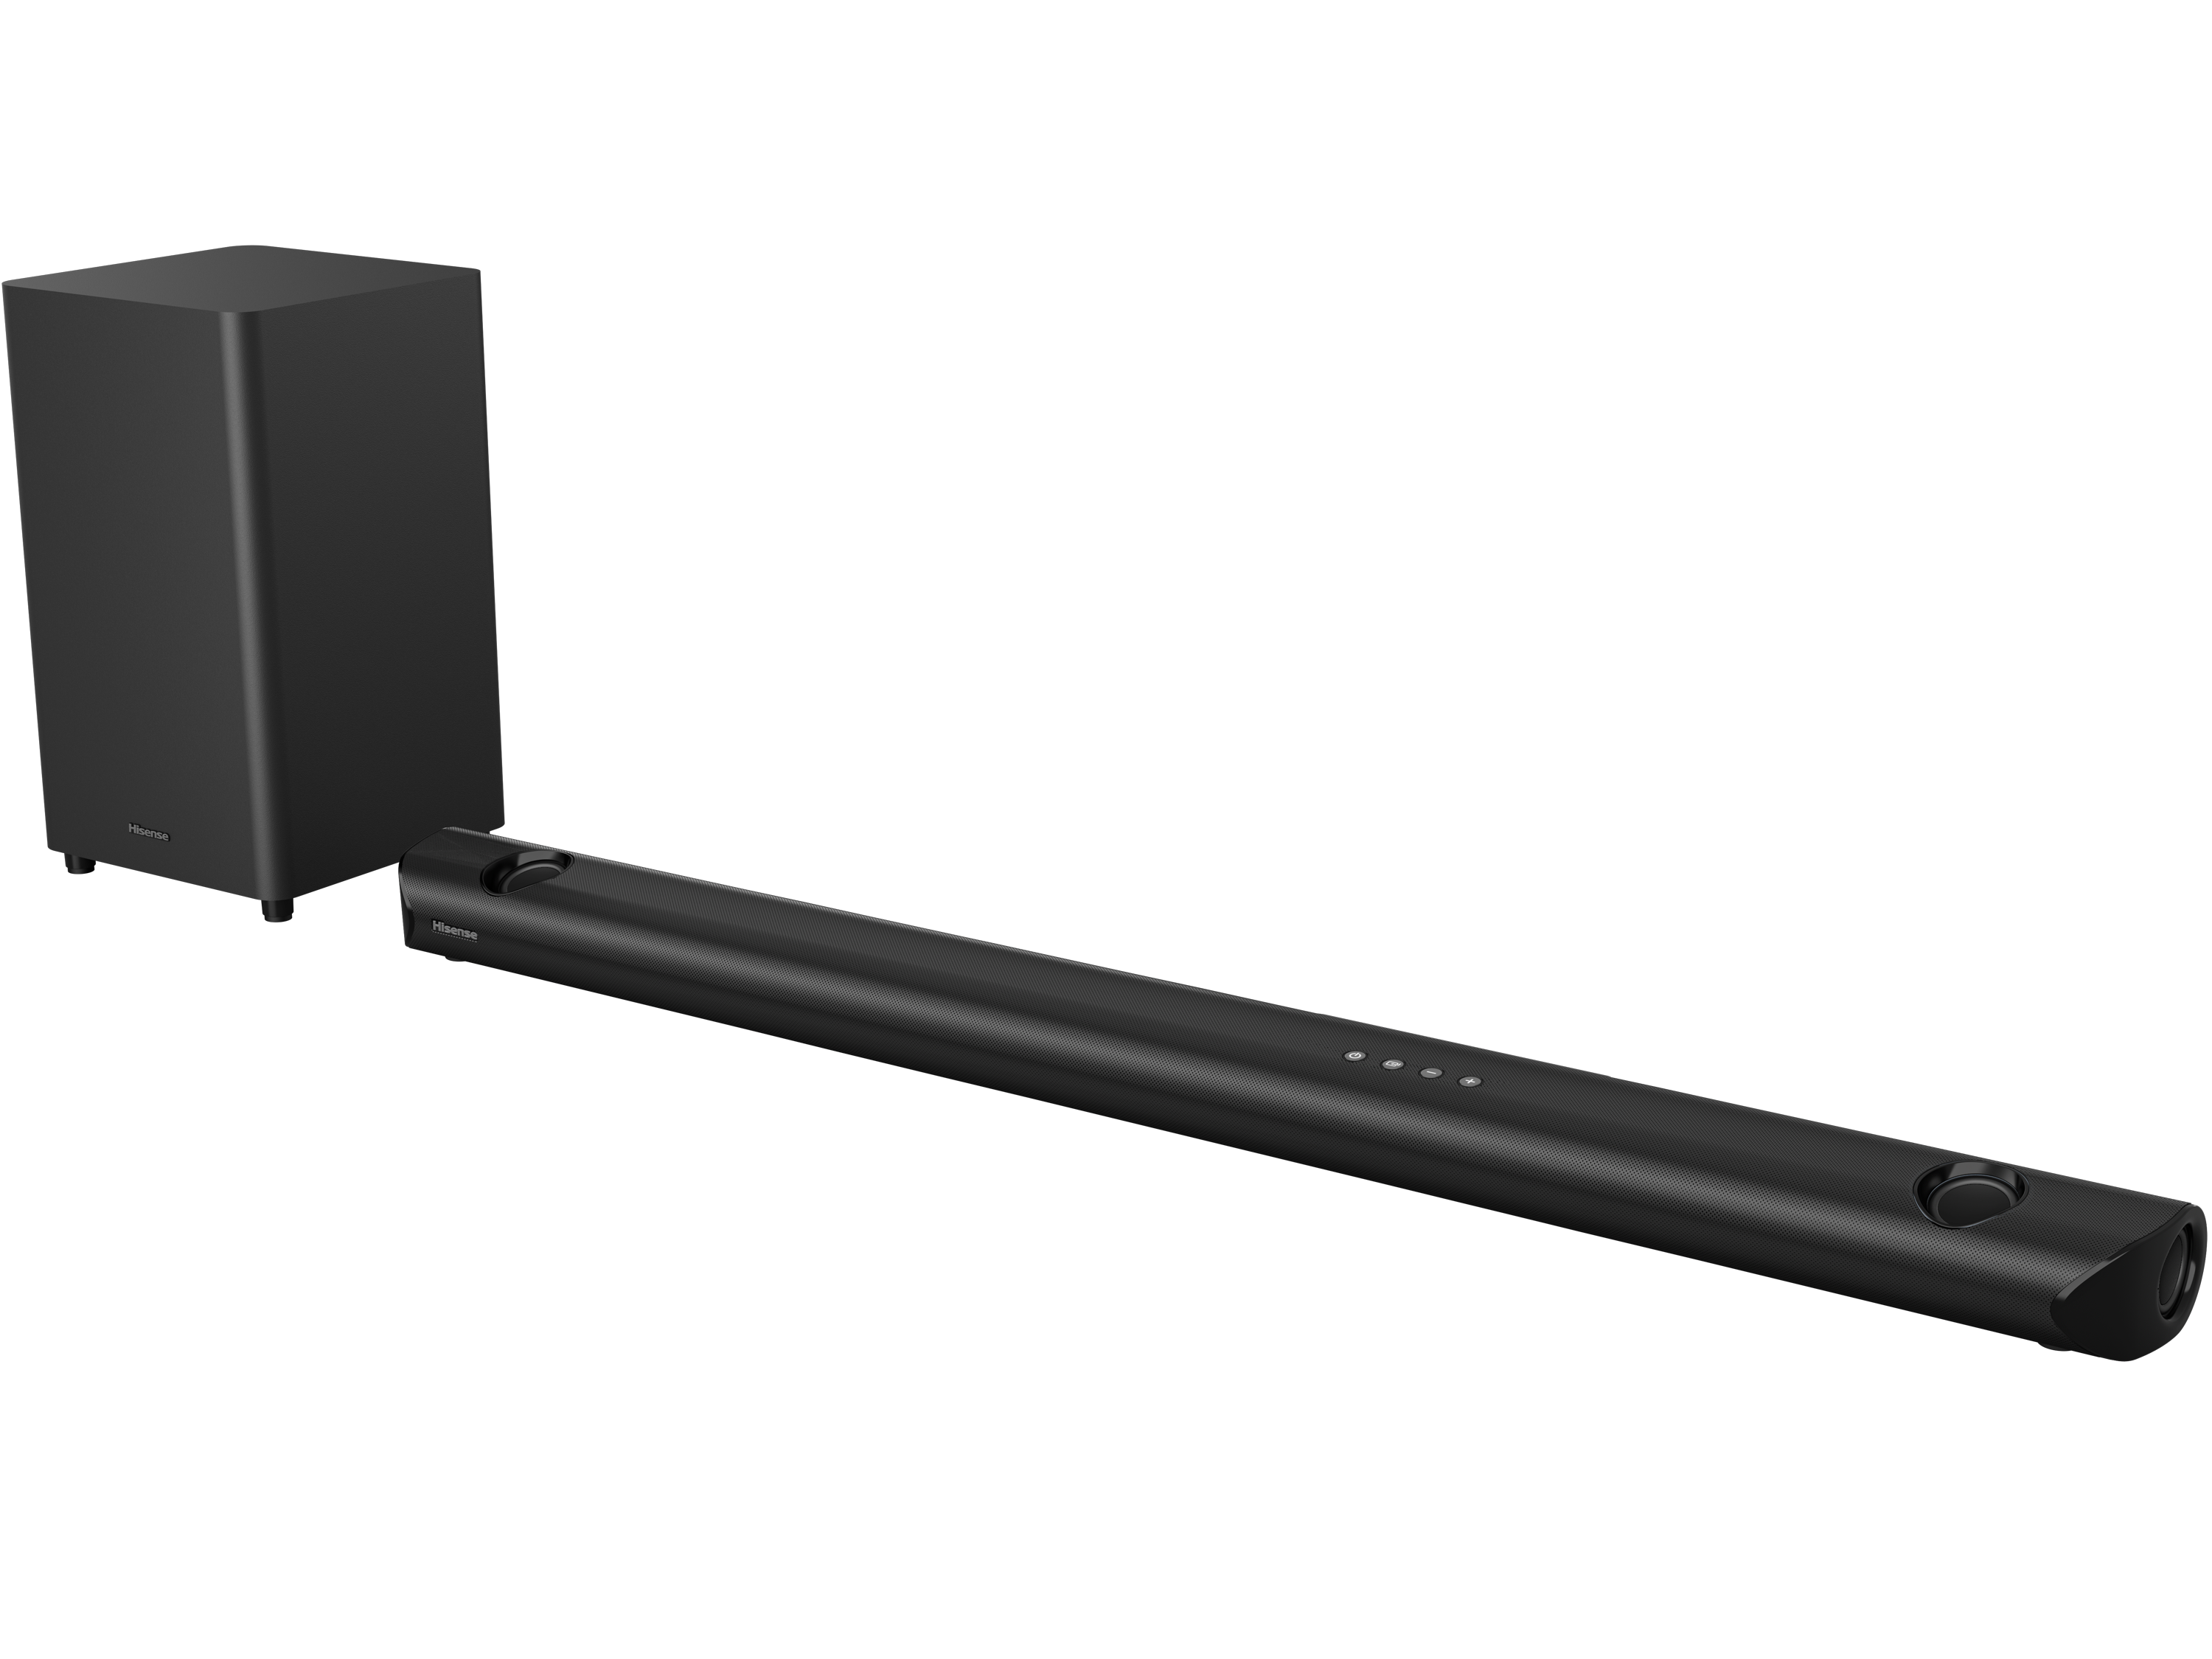 HS512 DOLBY ATMOS SOUNDBAR WITH WIRELESS SUBWOOFER